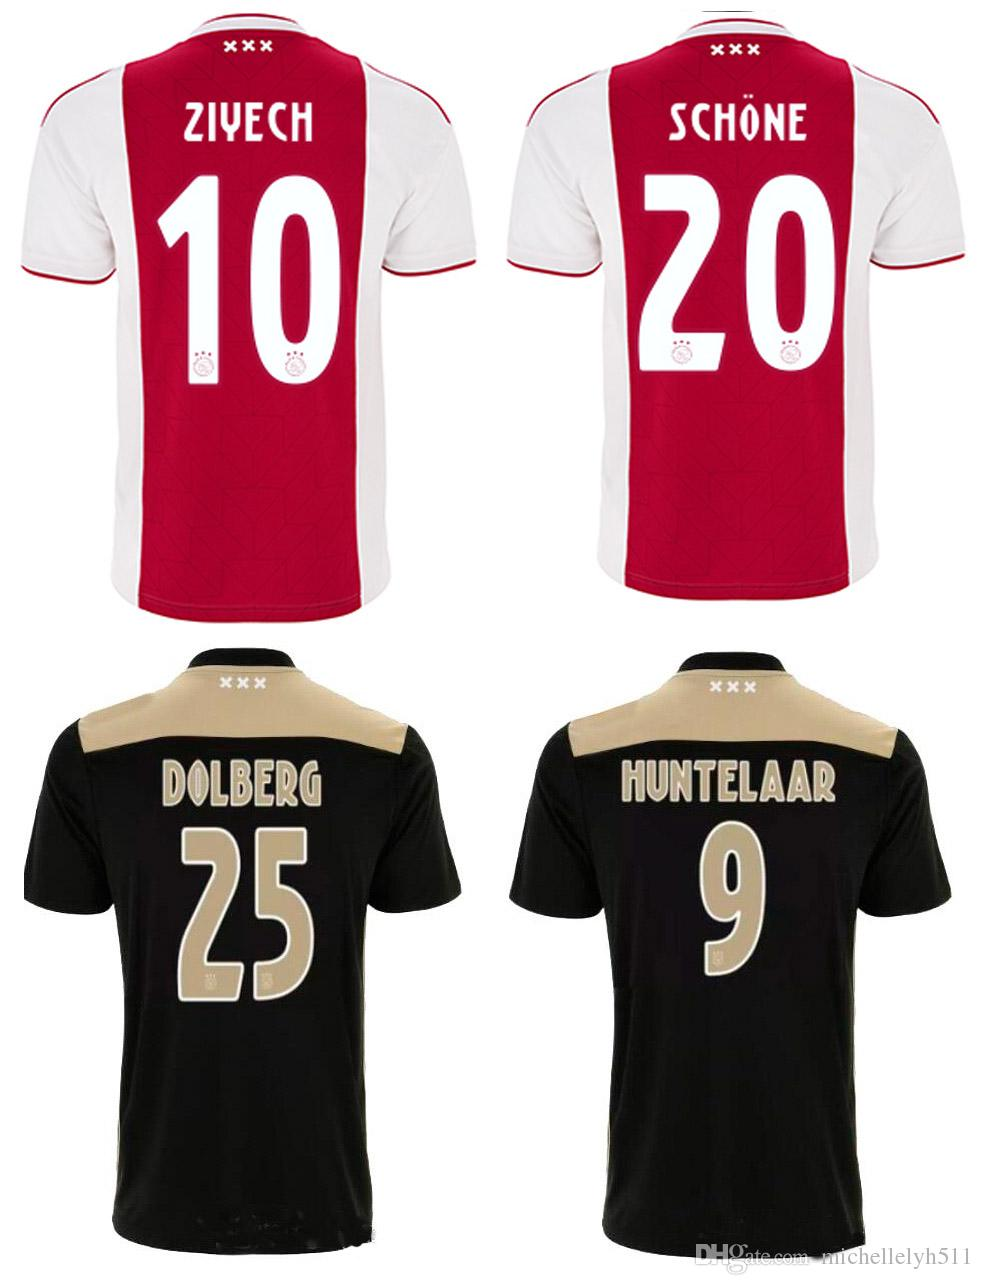 2eb4065a475 2019 18 19 Ajax Home Away Soccer Jerseys Mens Top Thai Quality Football  Shirts 2018 2019 ZIYECH DOLBERG NOURI DE LIGT Schone Football Jerseys From  ...